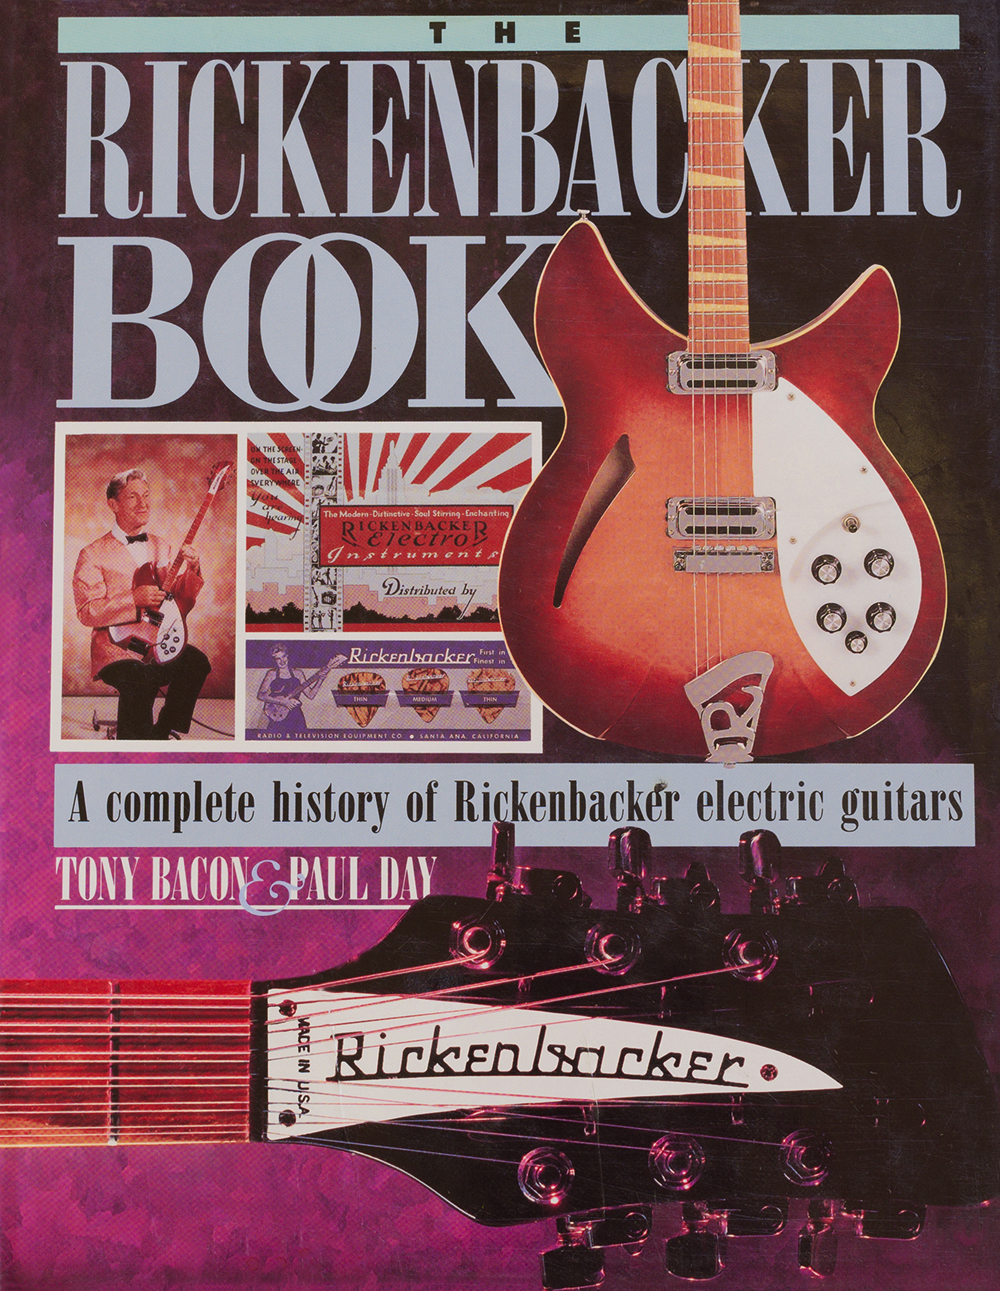 The Green-Glo guitar is 1 of mine that appears in Tony Bacon's fabulous Rickenbacker book